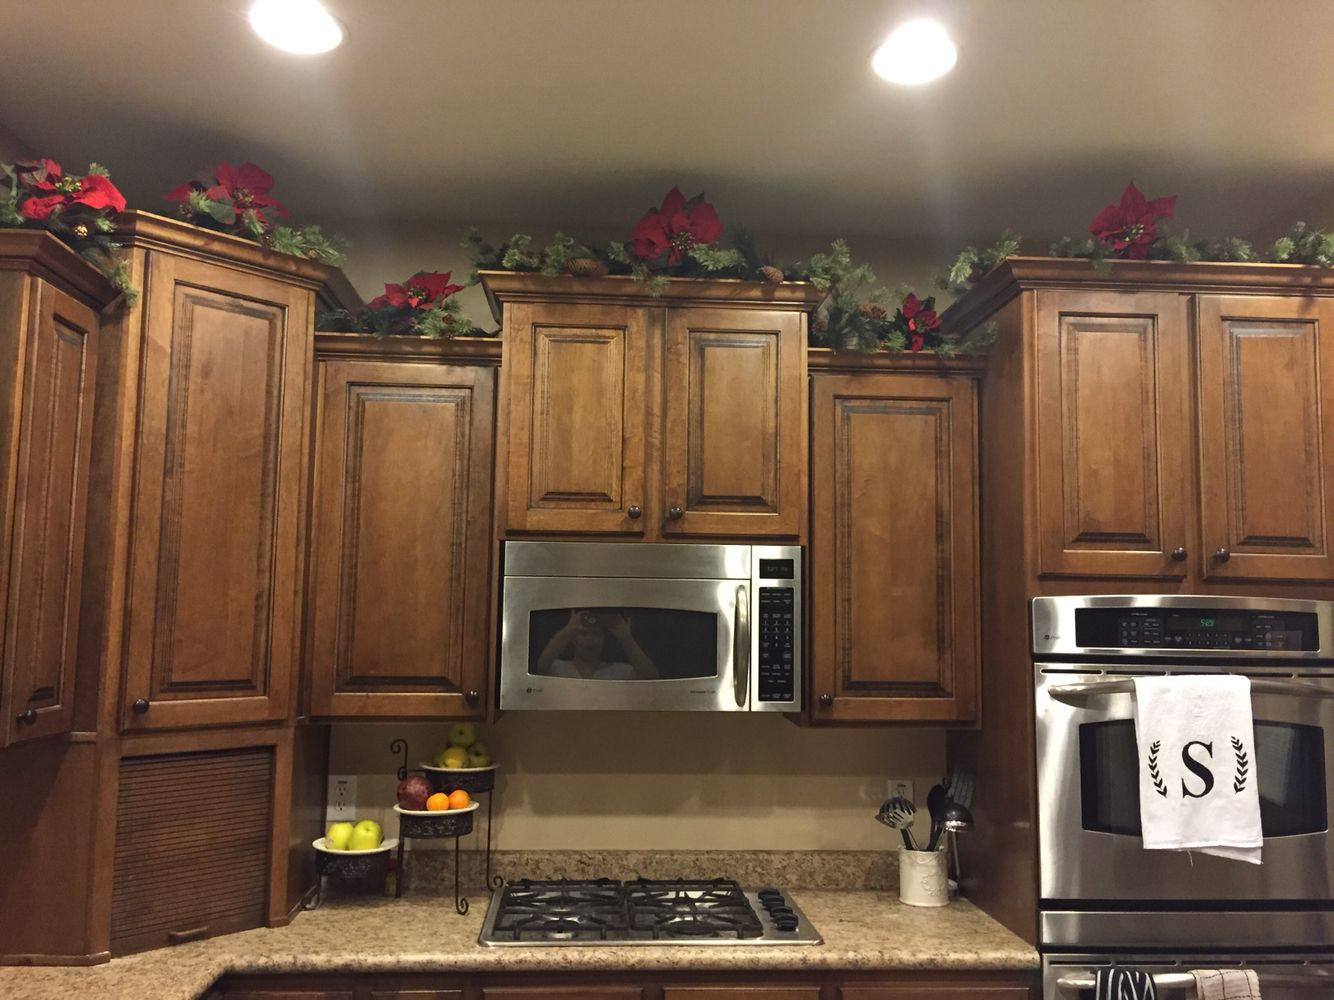 Above Cabinet Decoration For Christmas Christmas Kitchen Decor Holiday House Decor Christmas Kitchen